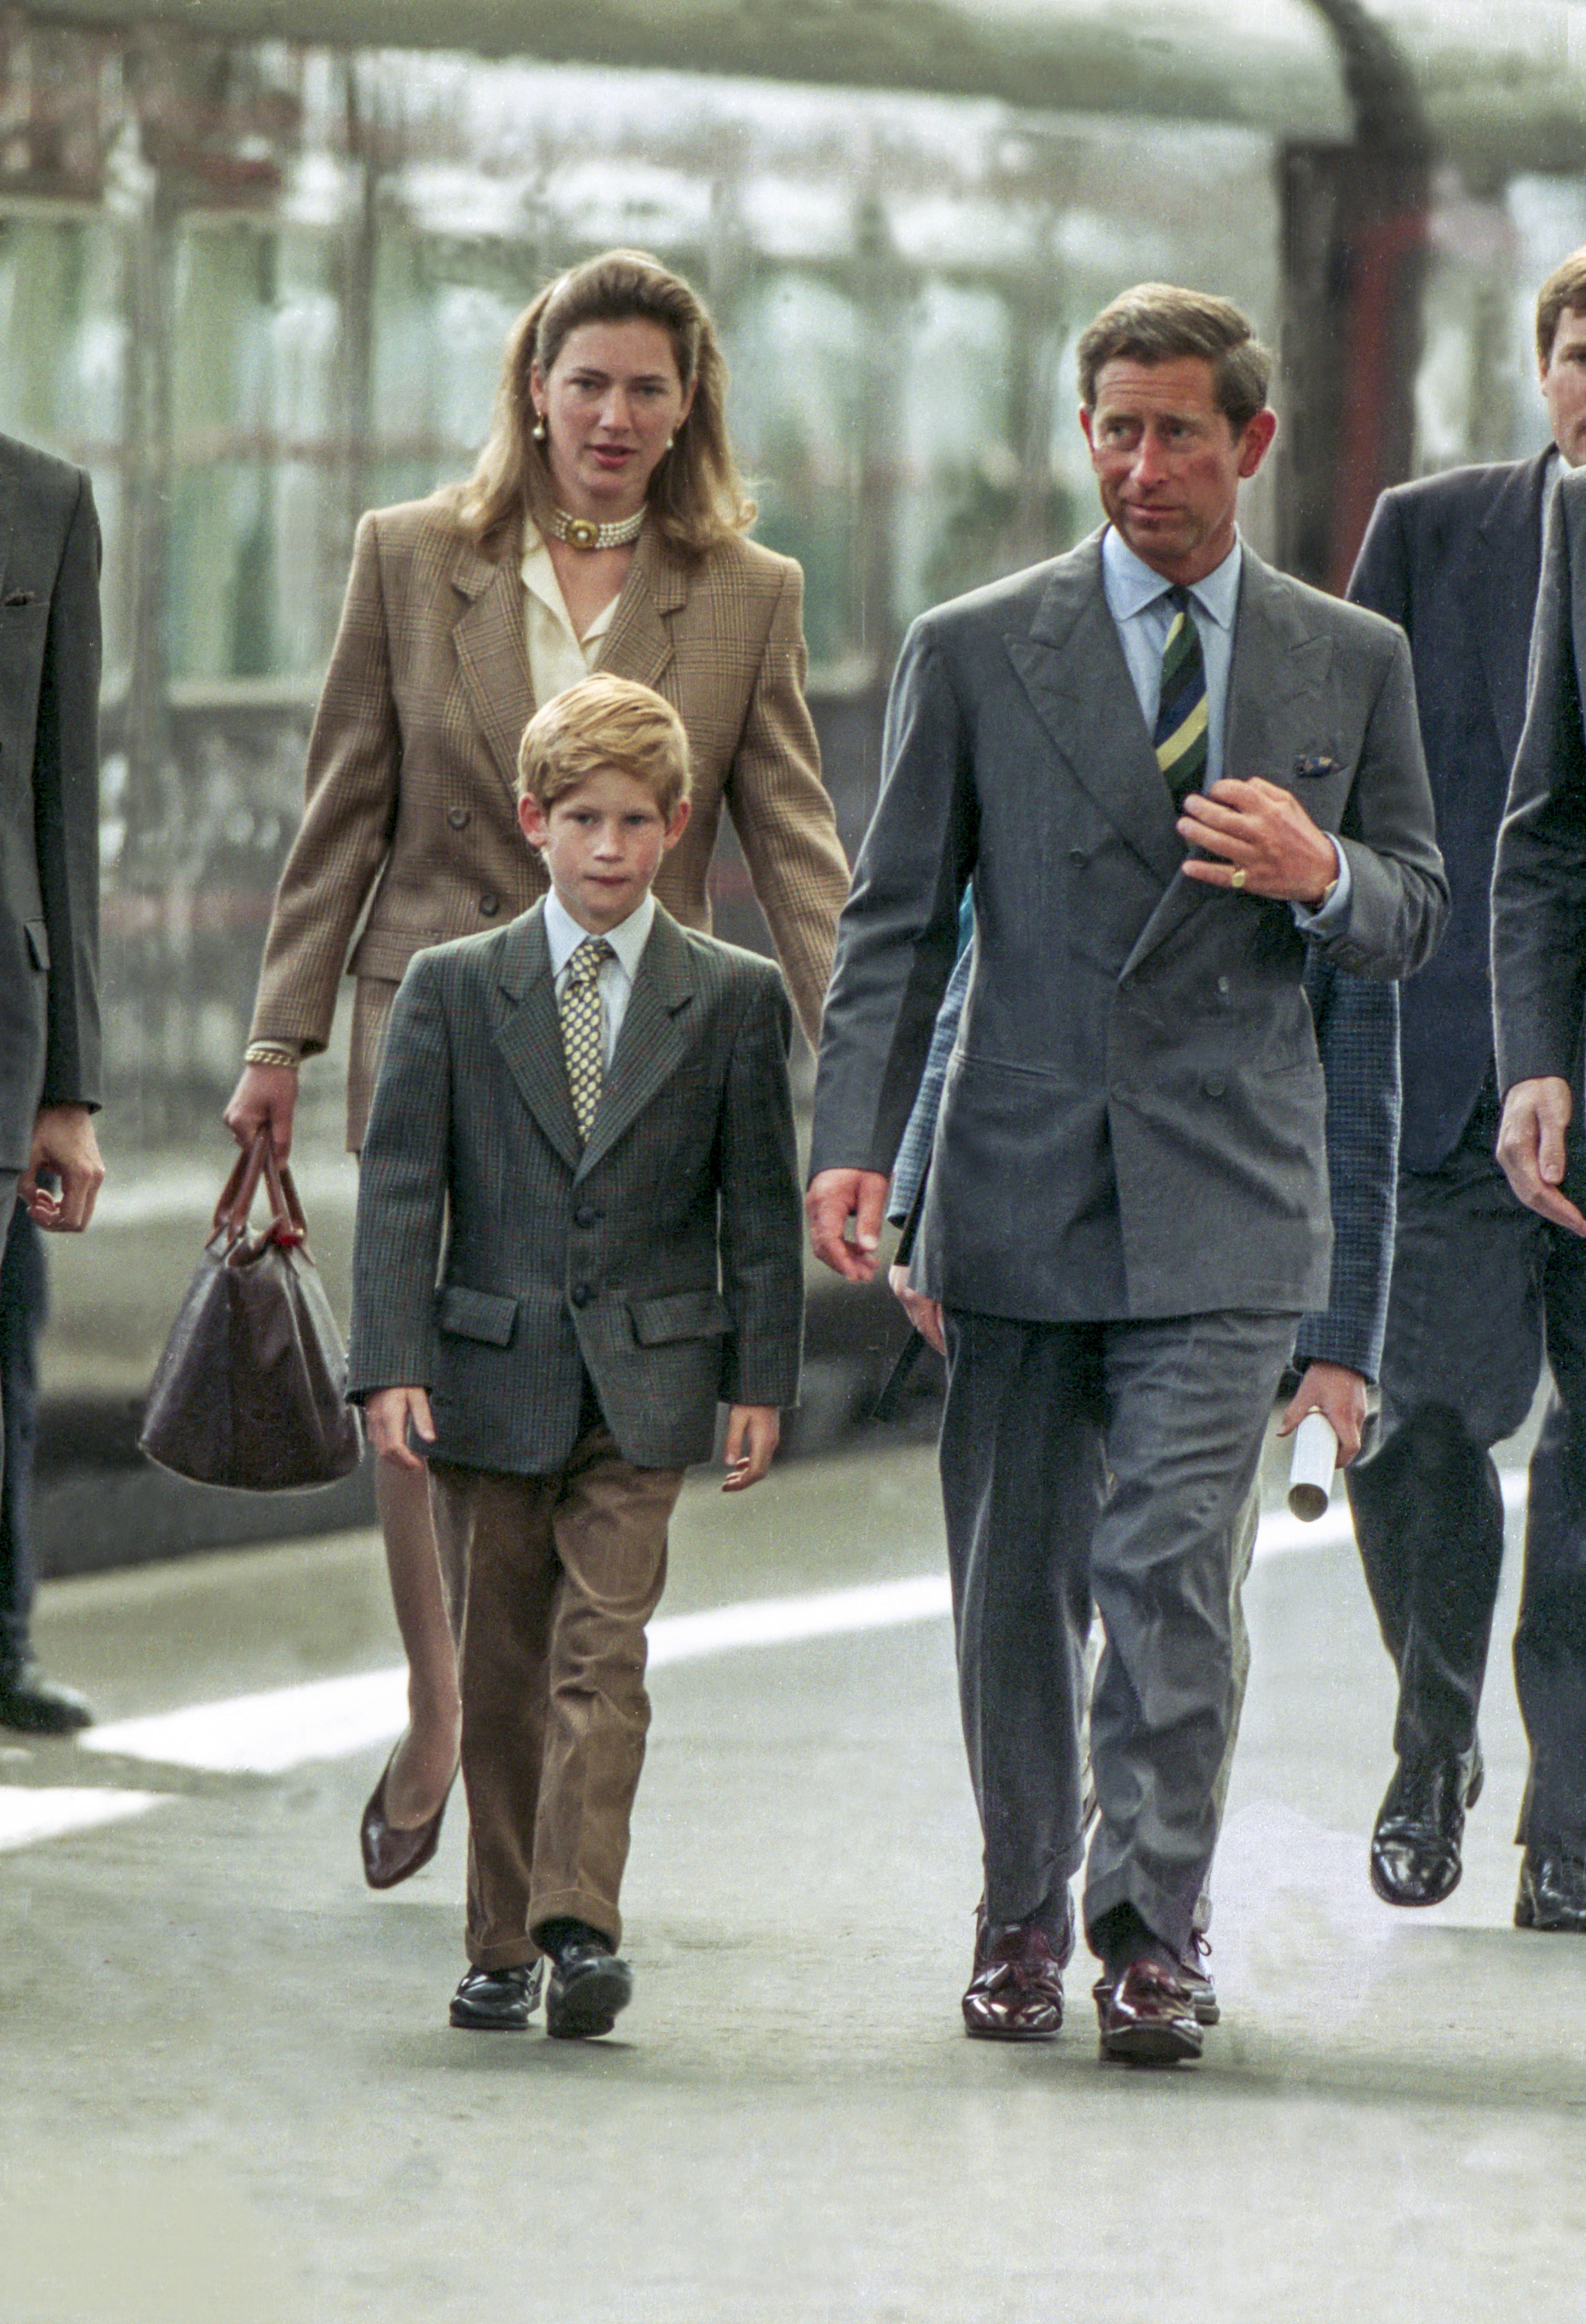 Charles, Prince of Wales, and Prince Harry, with nanny, Tiggy Legge Bourke, arrive at Aberdeen Railway Station on August 17, 1993 in Aberdeen, Scotland   Photo: Getty Images